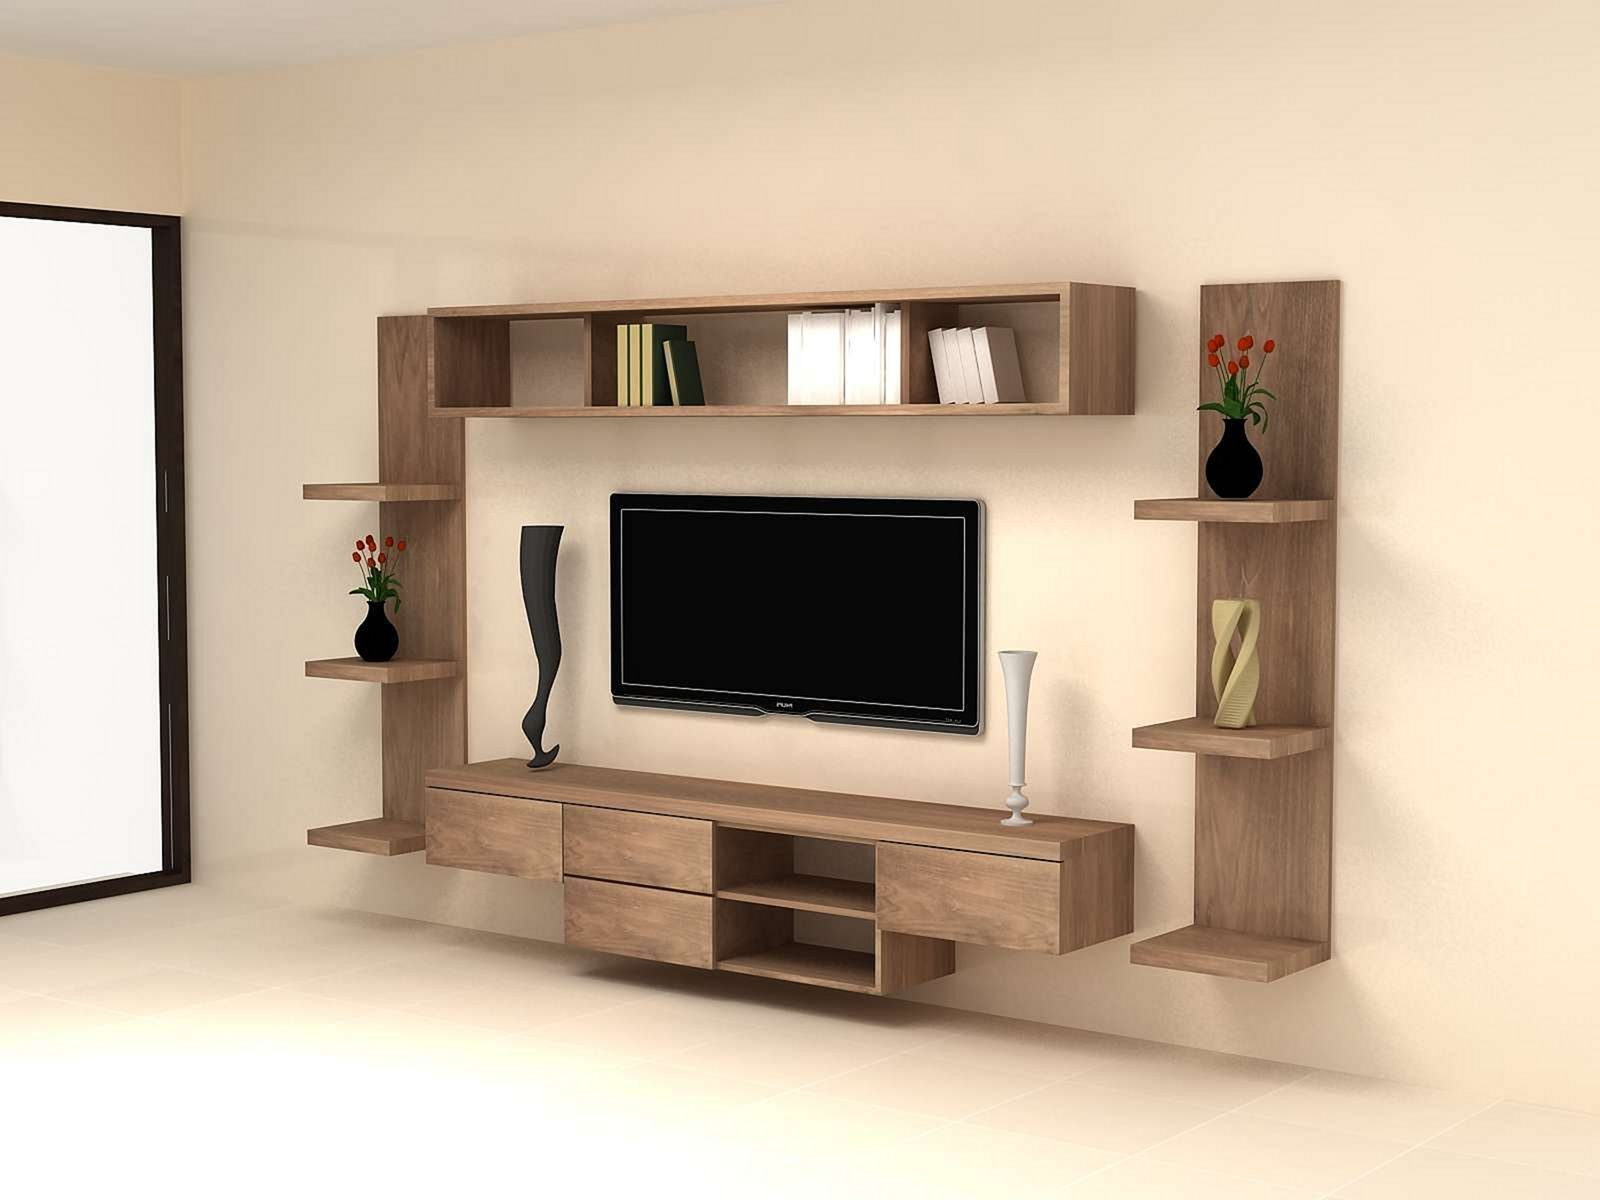 Affordable Wooden Tv Stands Design Ideas With Storage 17 Modern Tv Wall Units Modern Tv Units Tv Cabinet Design